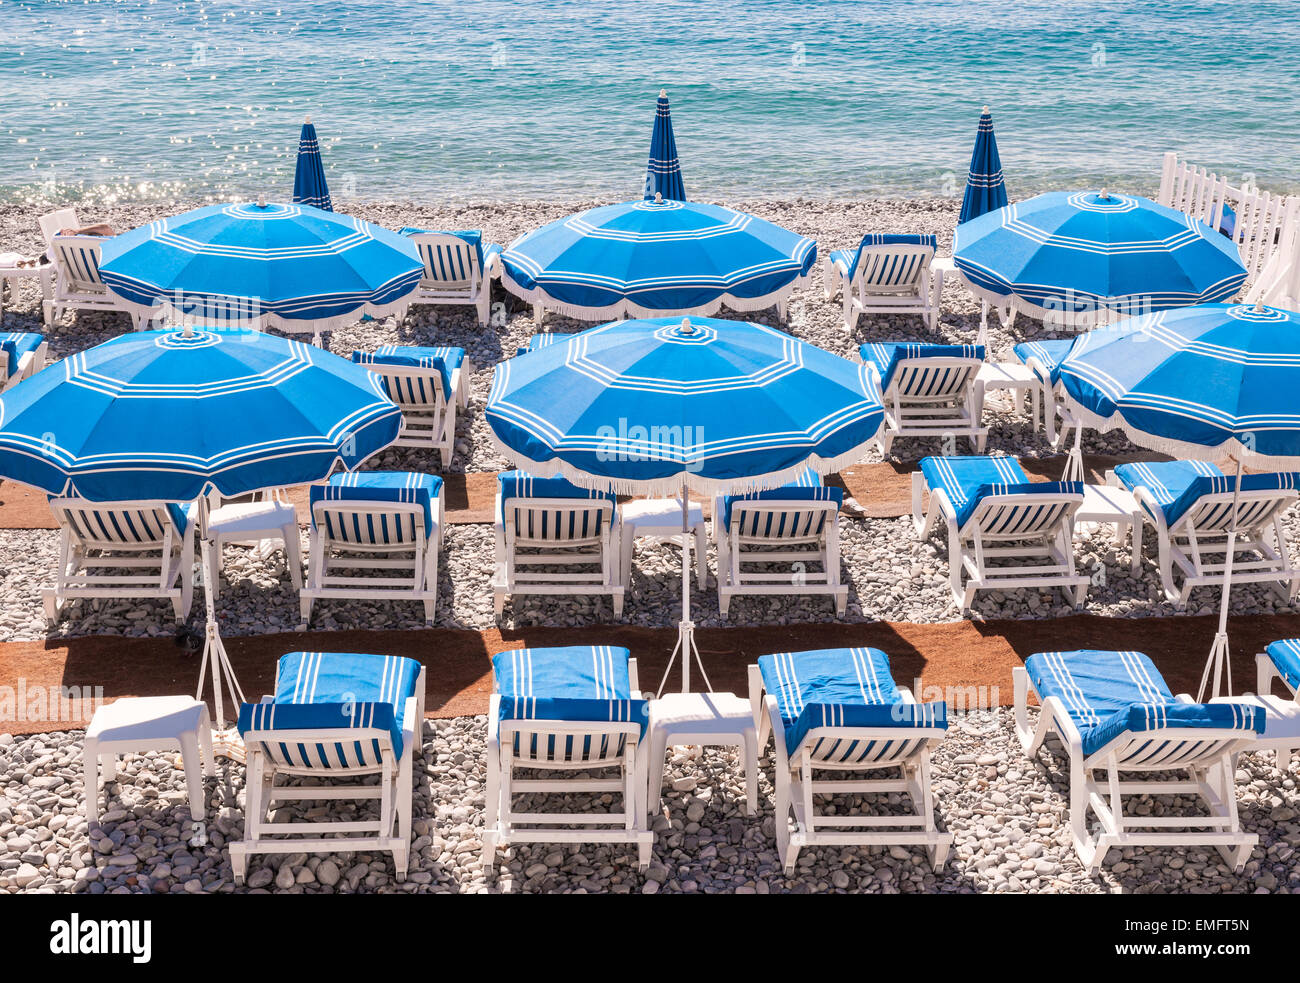 Blue umbrellas and chairs on pebble beach in Nice, France. - Stock Image